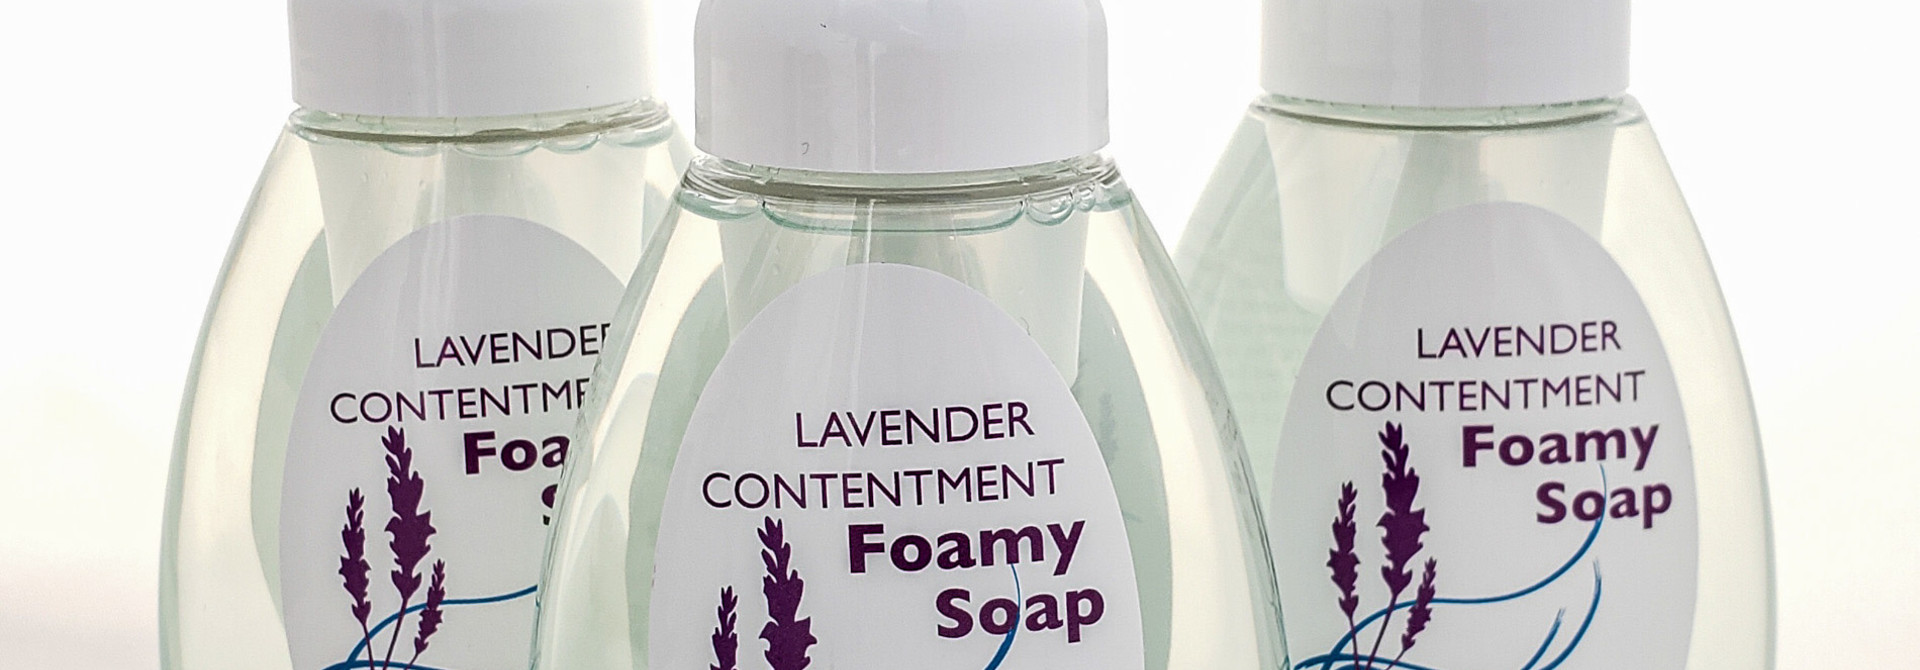 Lavender Contentment Foamy Soap